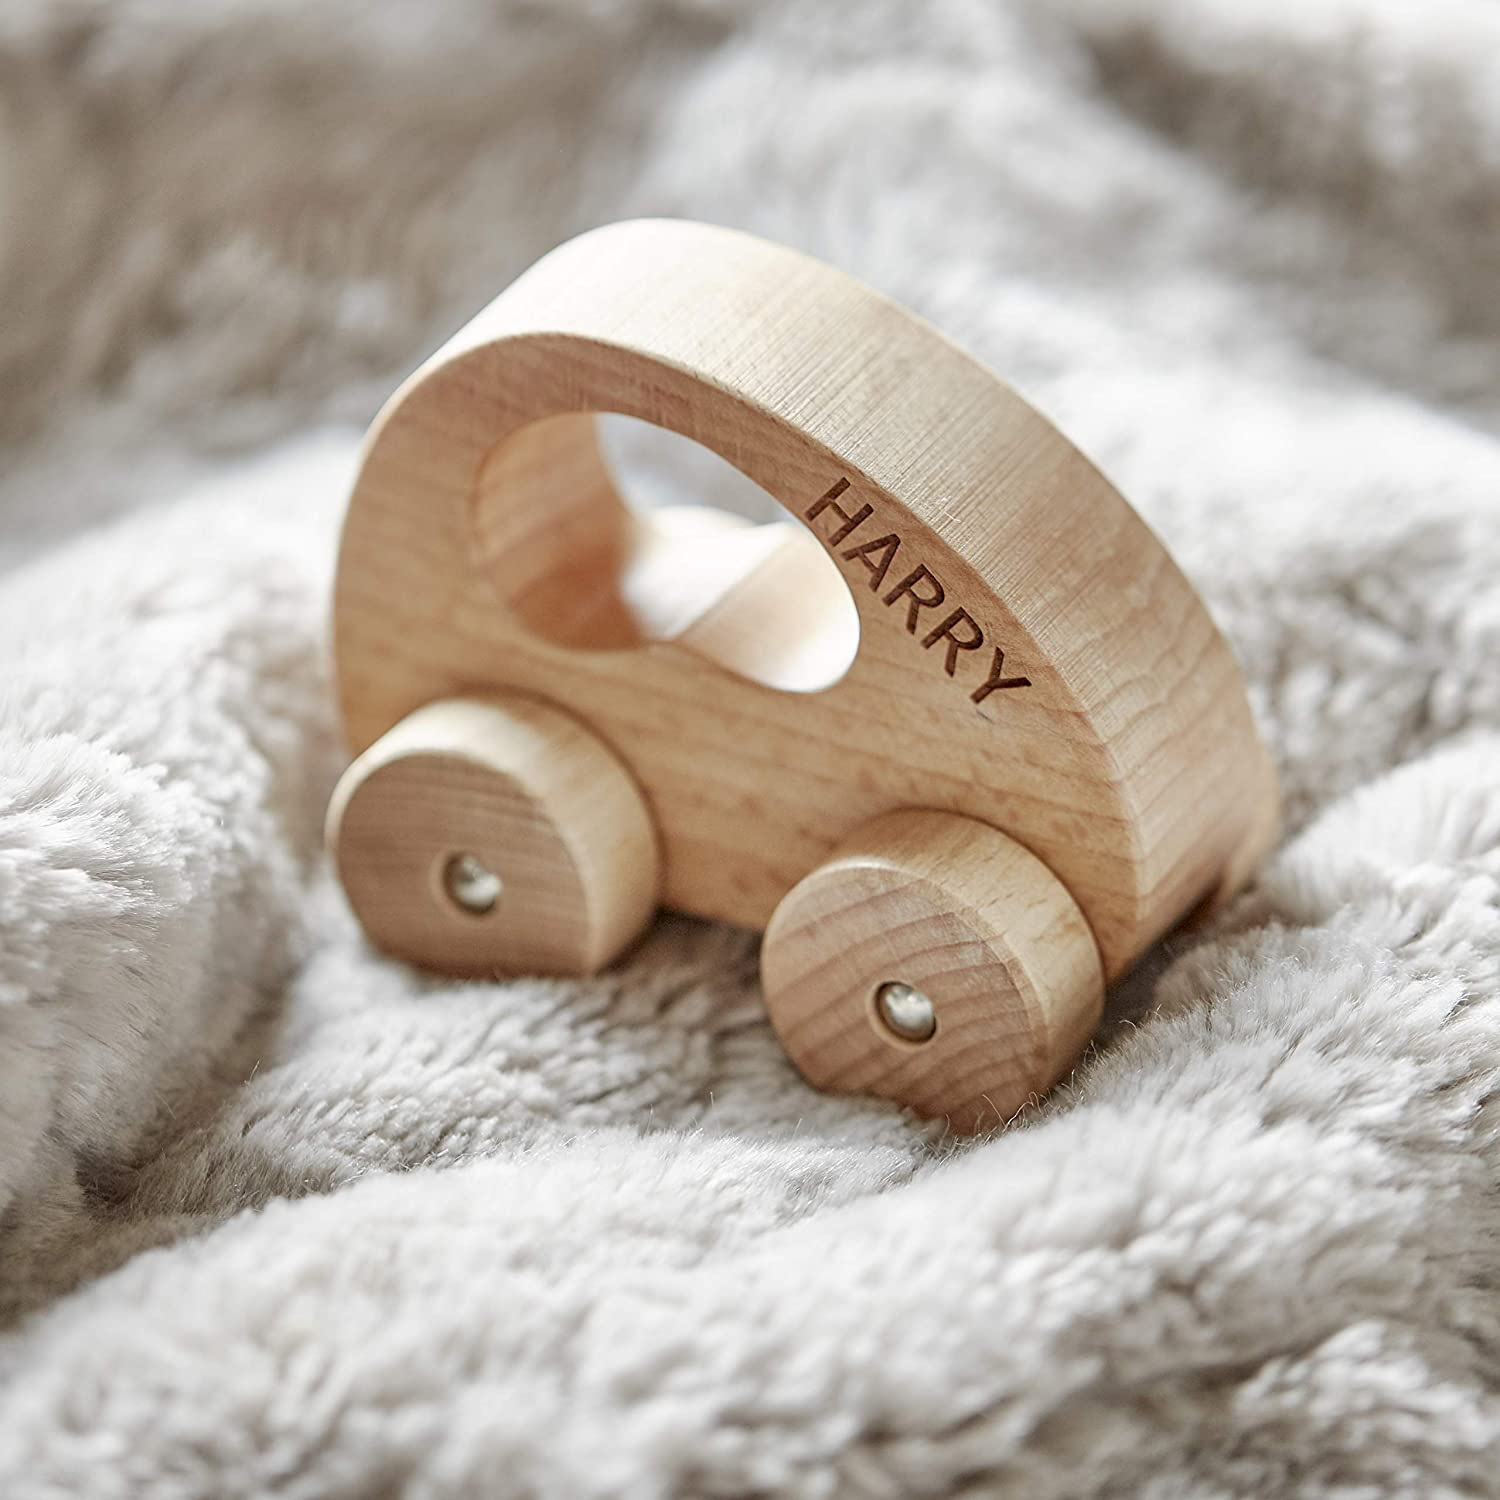 Personalised Wooden Car Toy